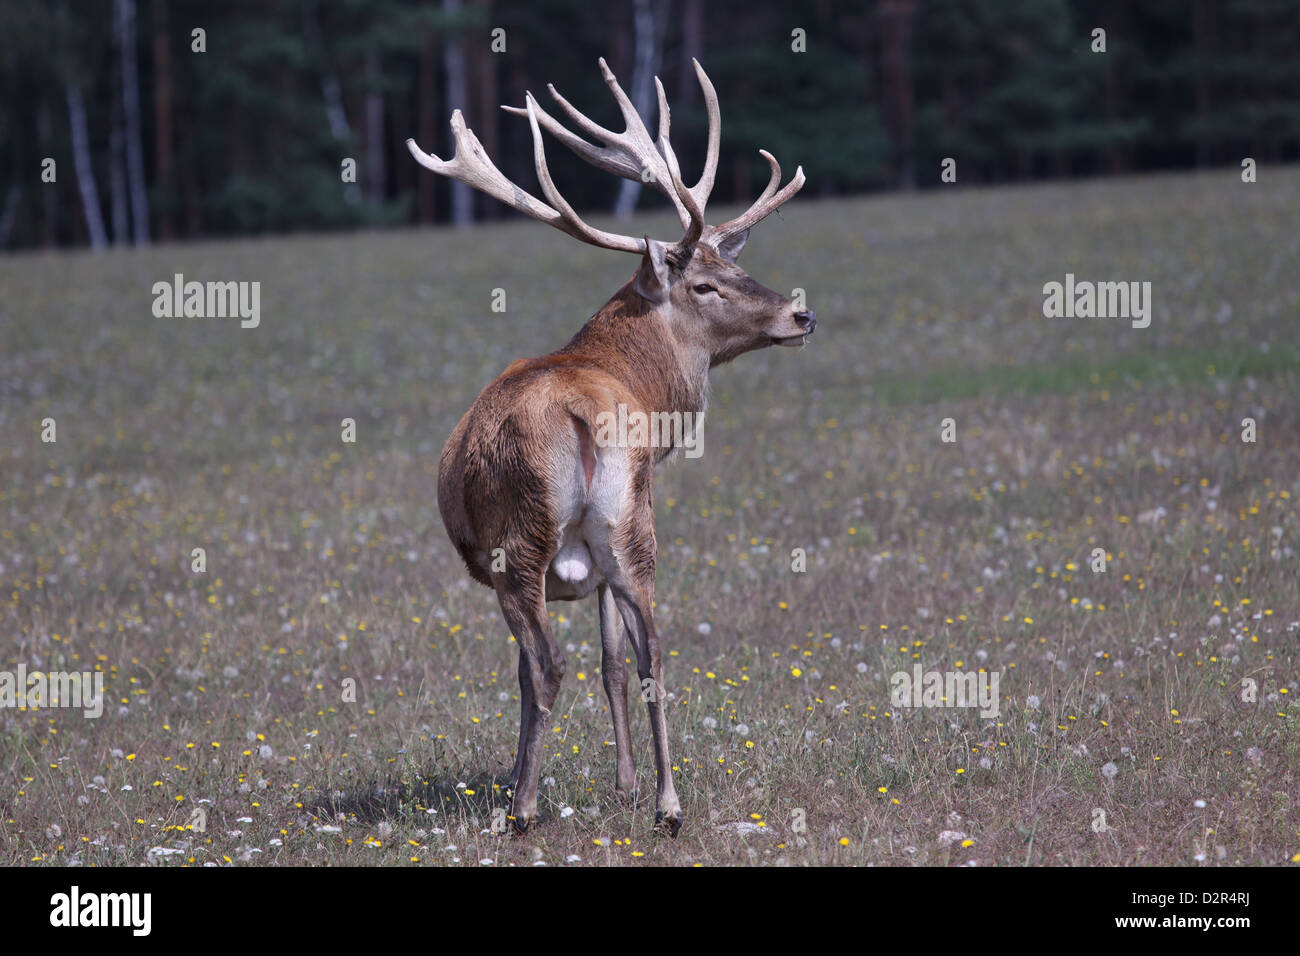 Rothirsch Cervus elaphus Stock Photo